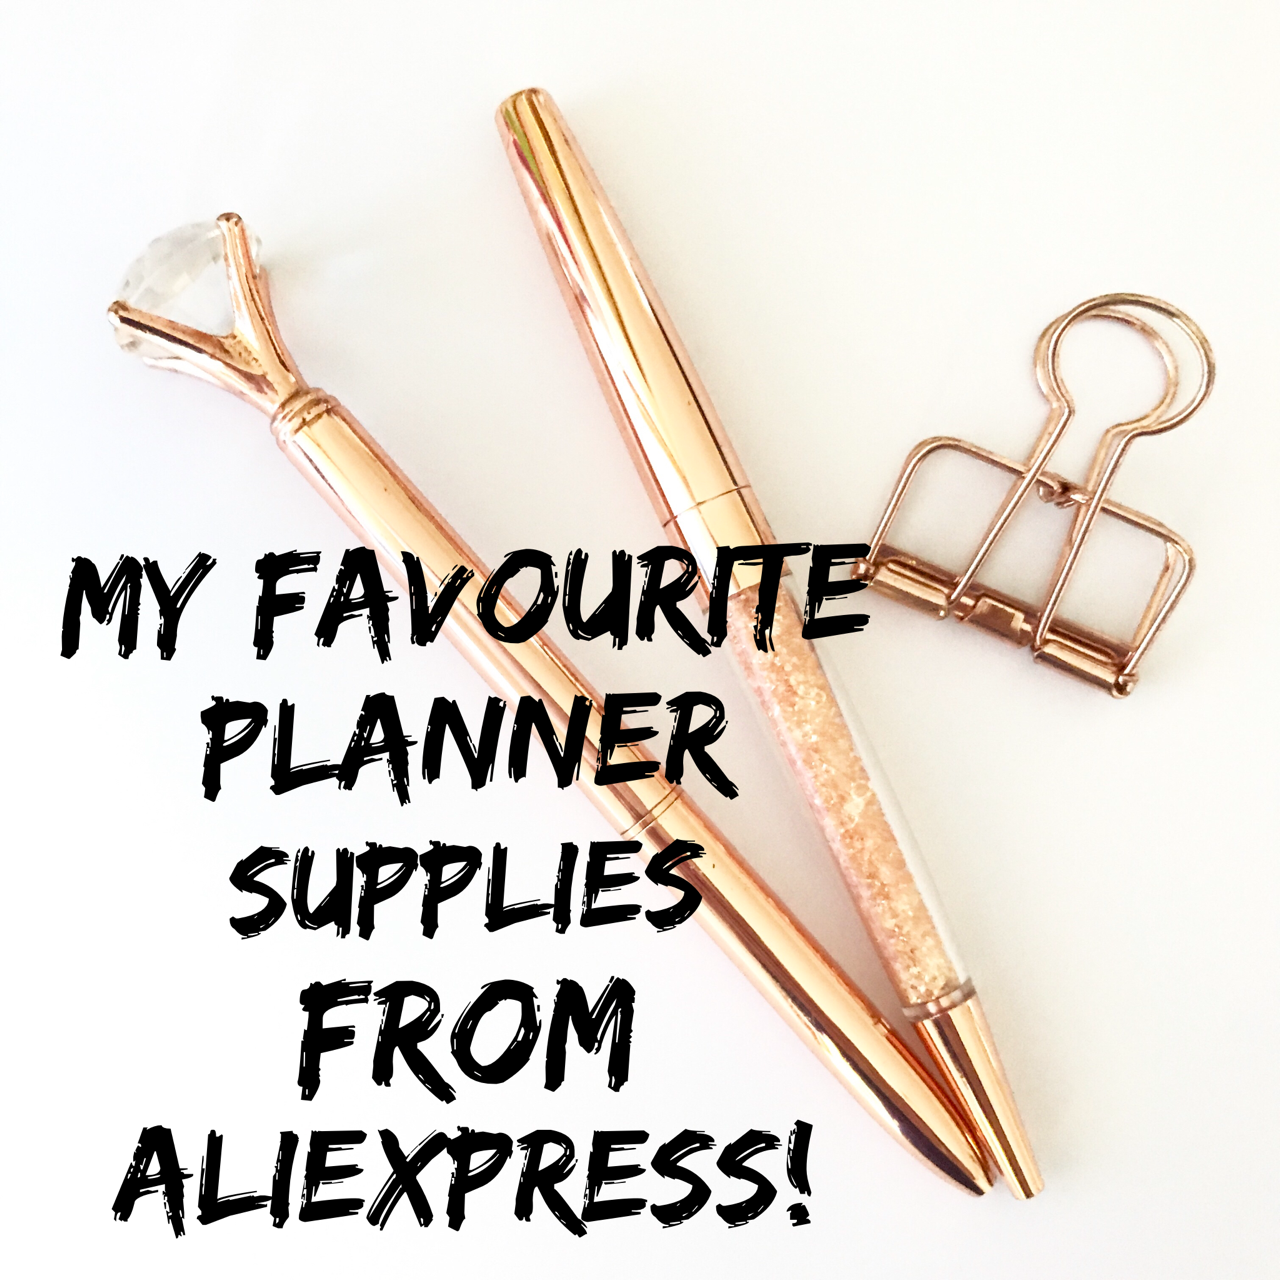 Bargain planner supplies from Aliexpress